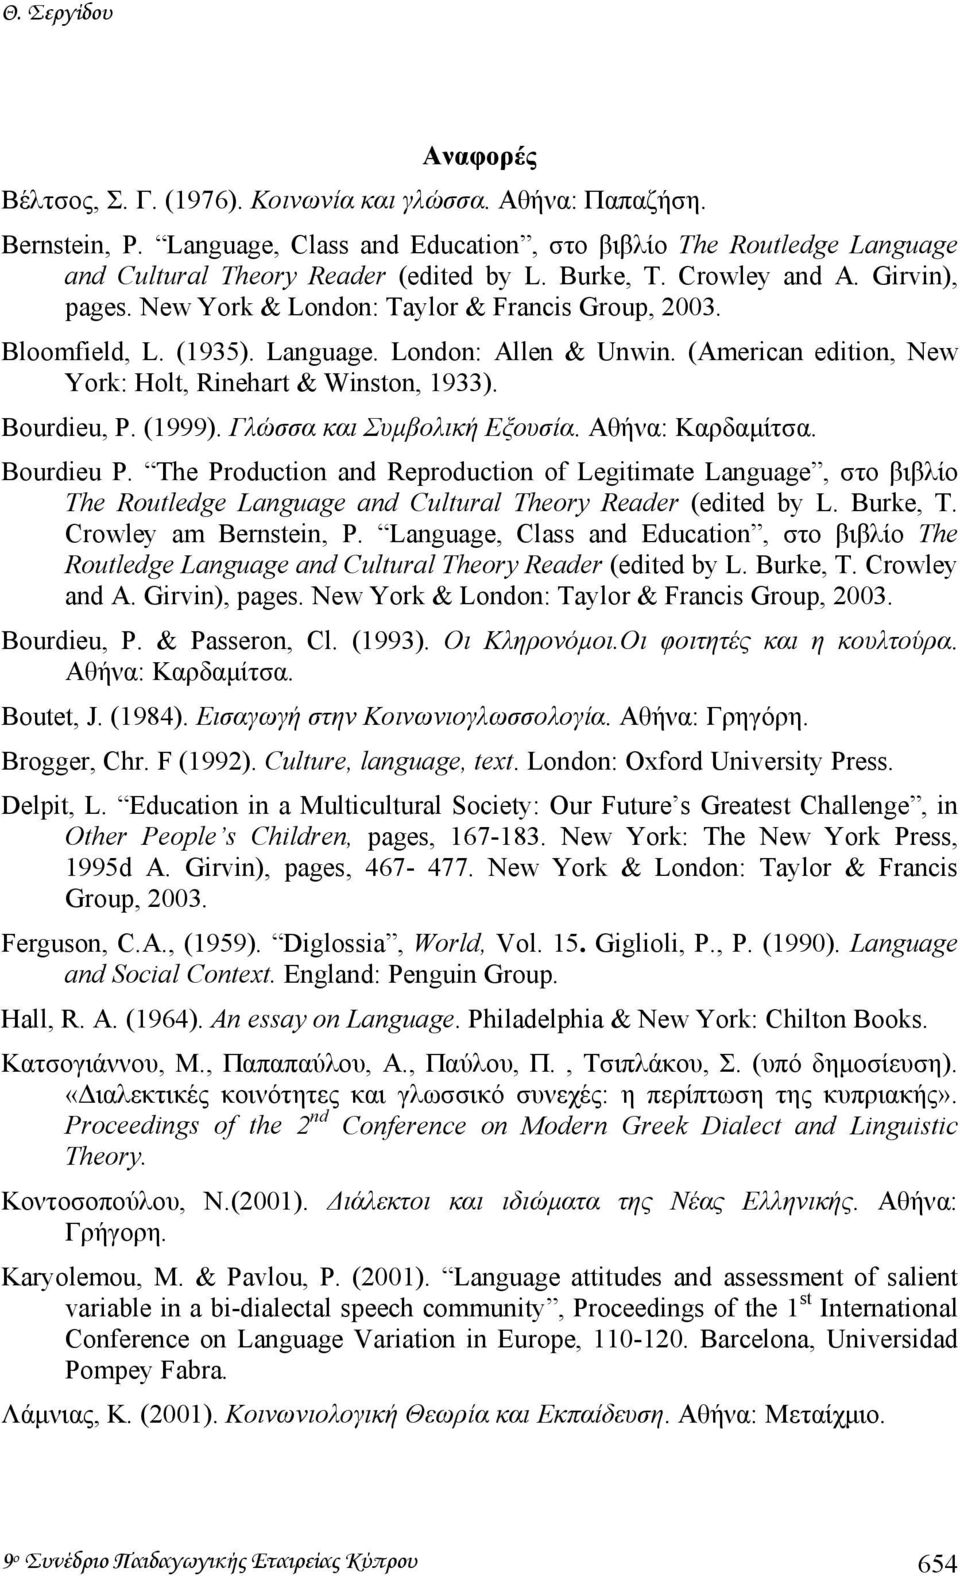 Bloomfield, L. (1935). Language. London: Allen & Unwin. (American edition, New York: Holt, Rinehart & Winston, 1933). Βourdieu, P. (1999). Γλώσσα και Συµβολική Εξουσία. Αθήνα: Καρδαµίτσα. Bourdieu P.